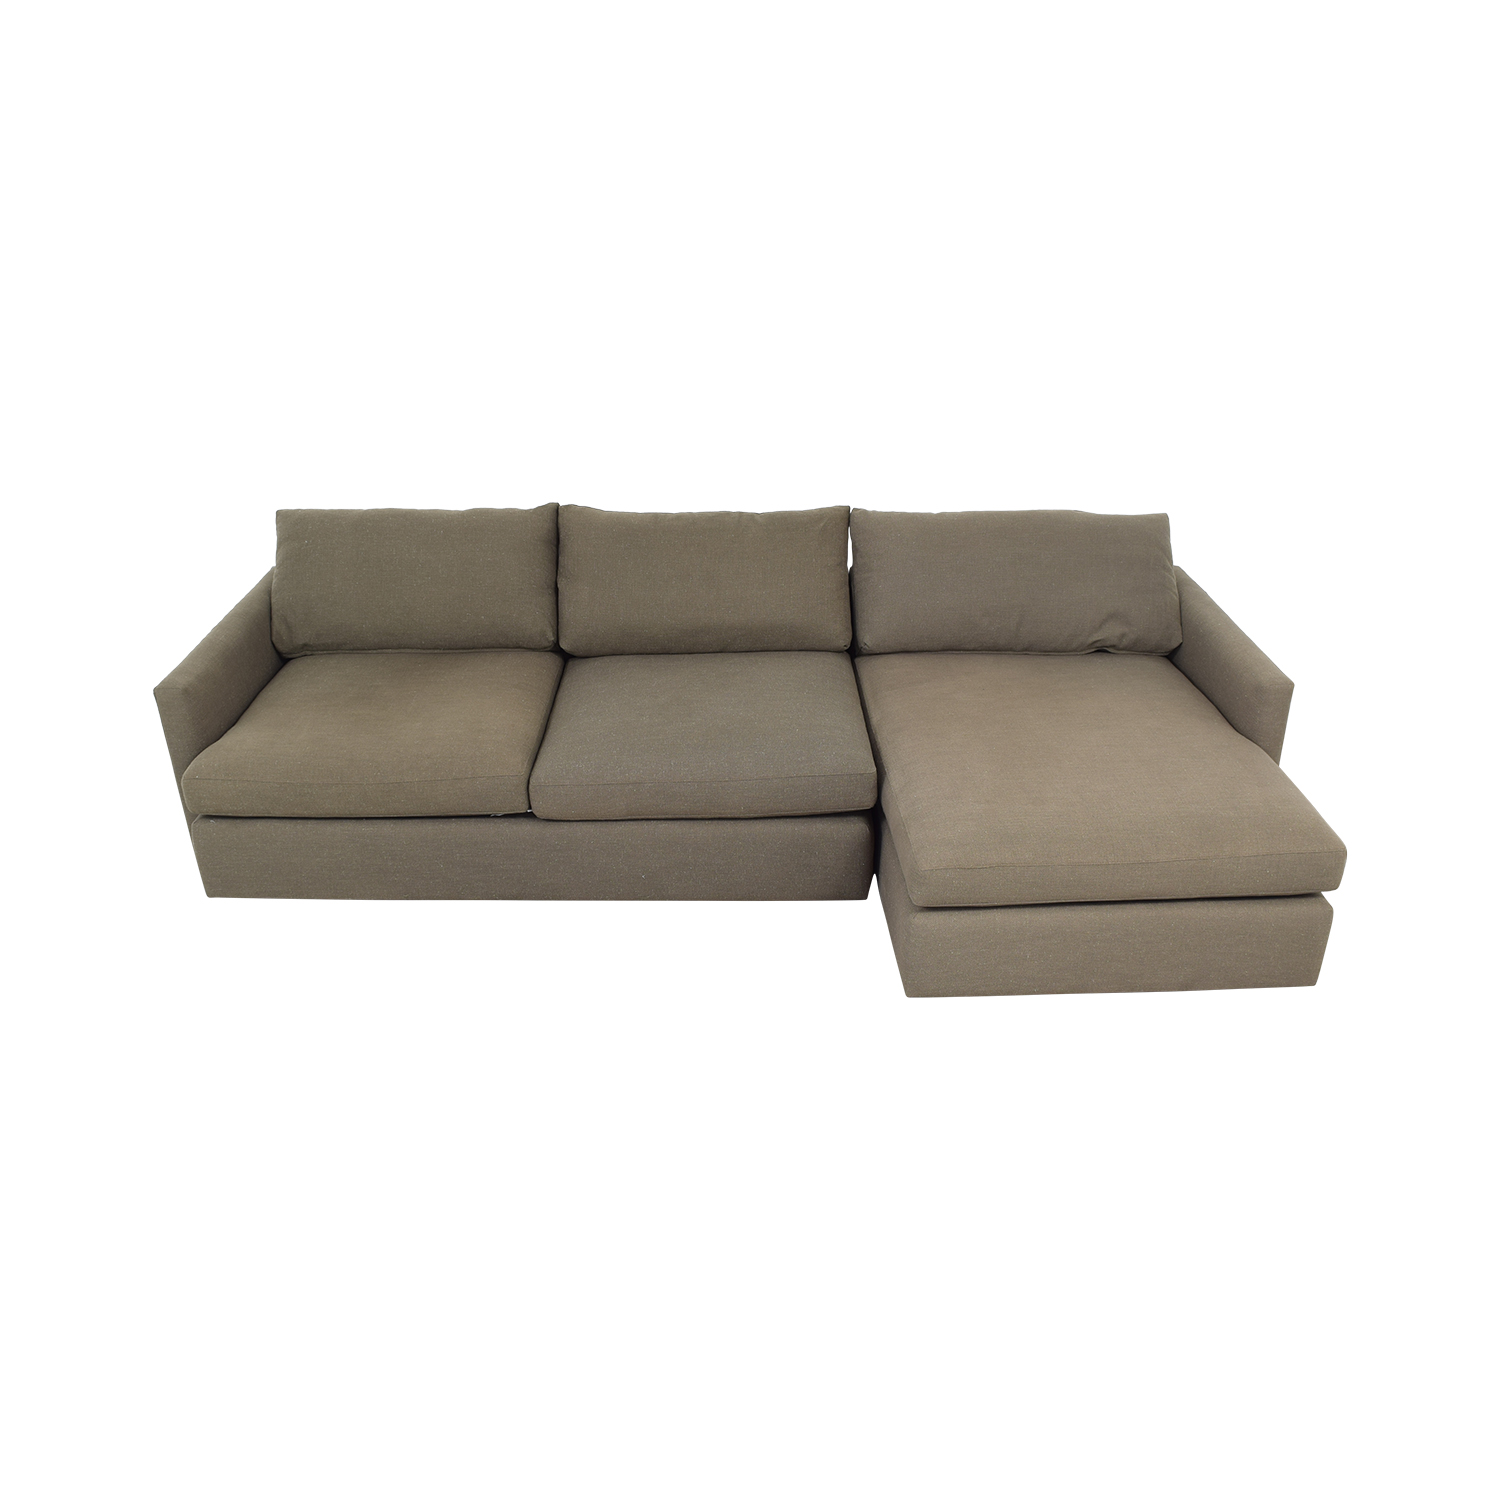 Crate & Barrel Crate & Barrel Two Piece Chaise Sectional Sofa dimensions